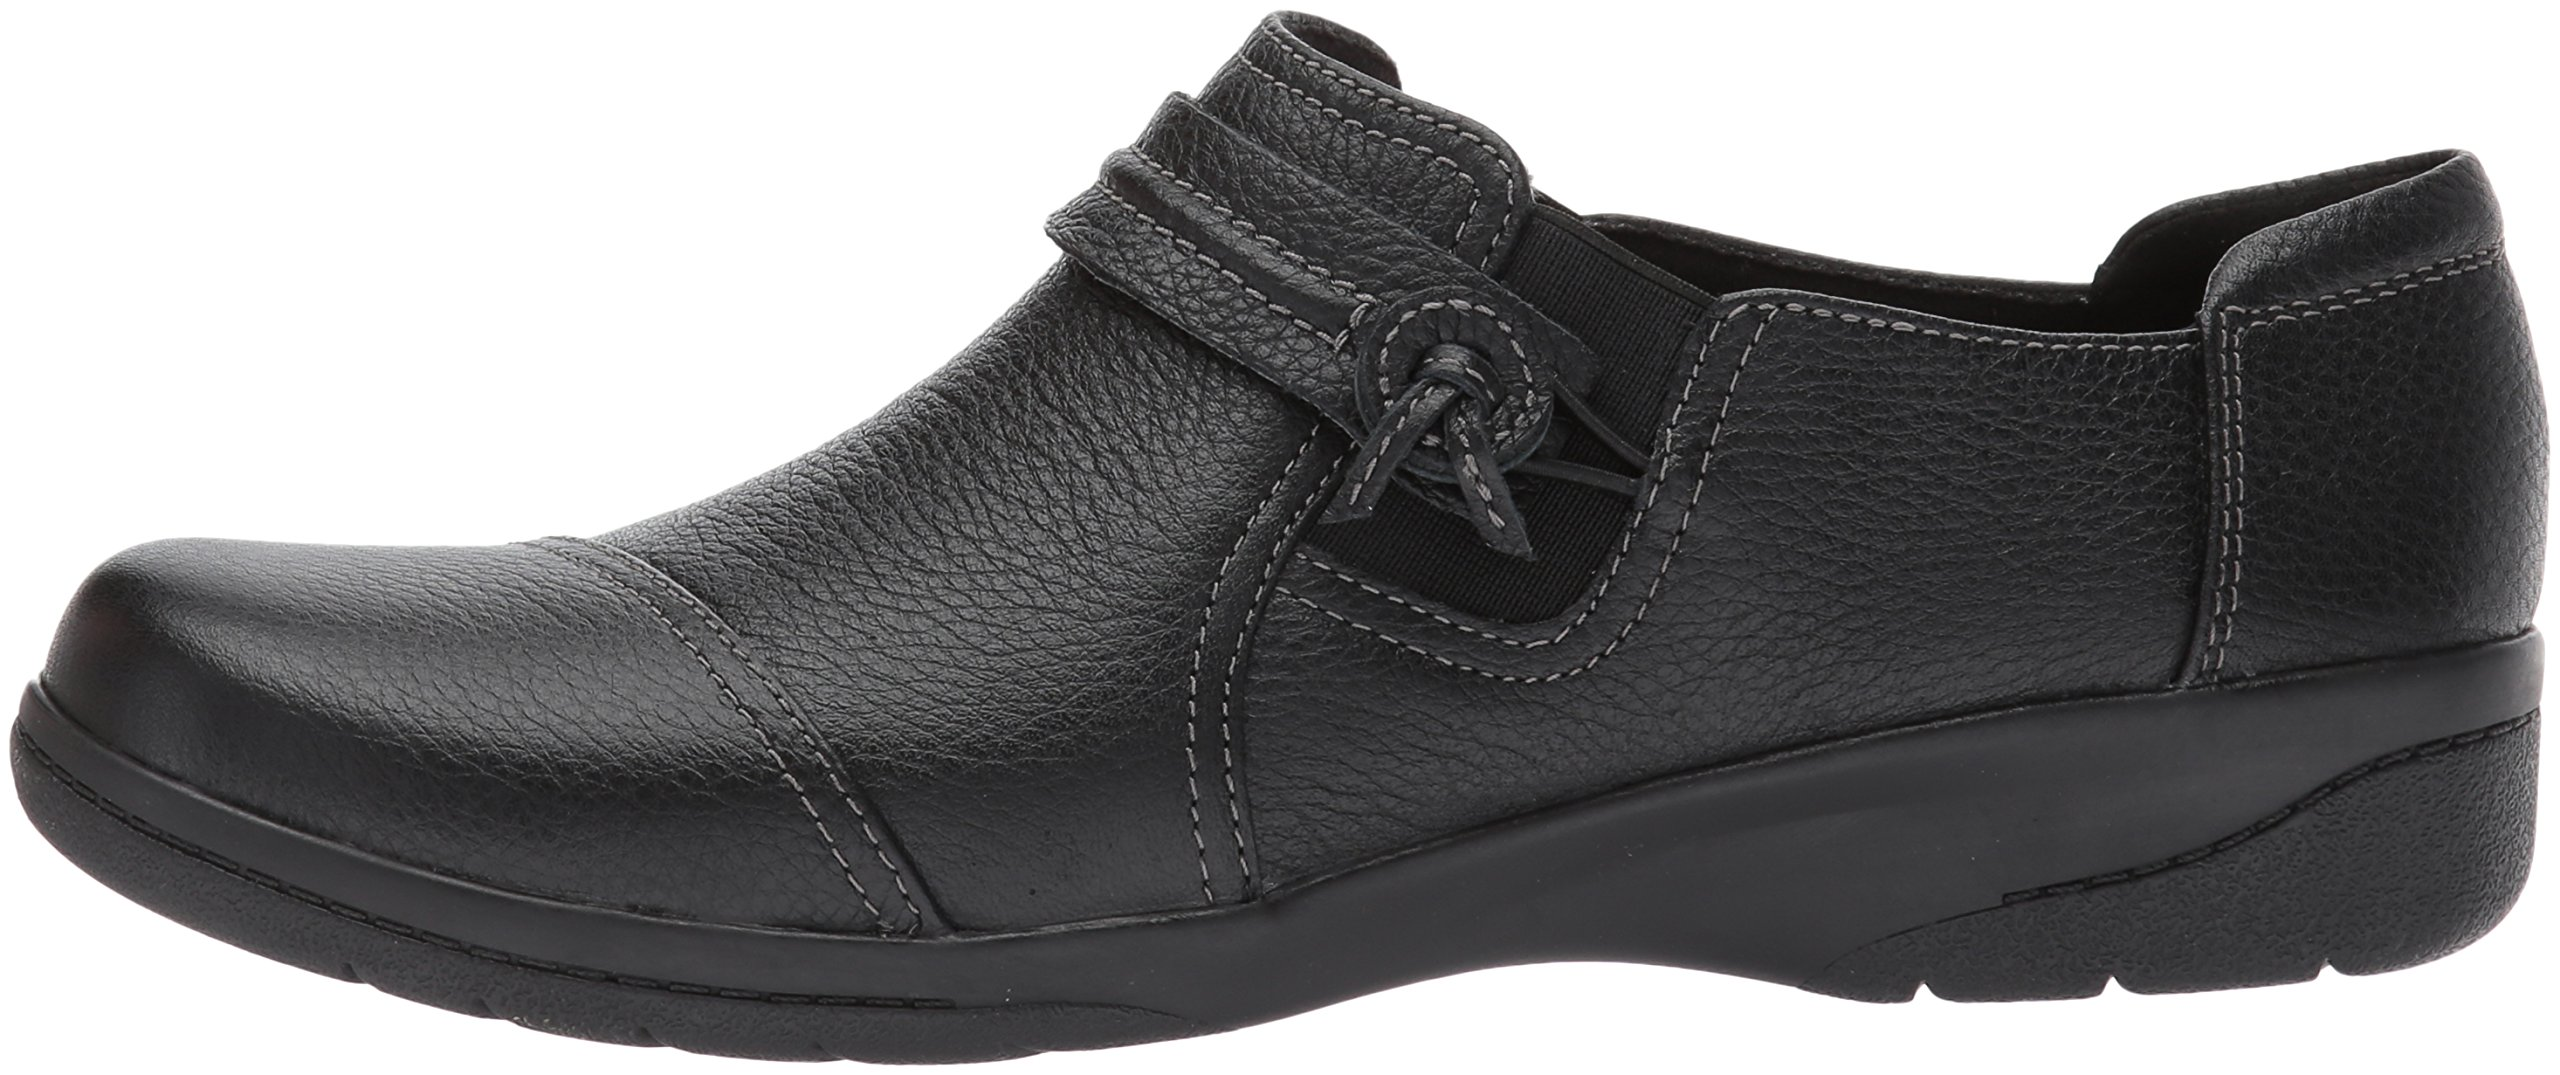 Clarks Women's Cheyn Madi Slip-On Loafer, Black Tumbled Leather, 9.5 W US by CLARKS (Image #5)